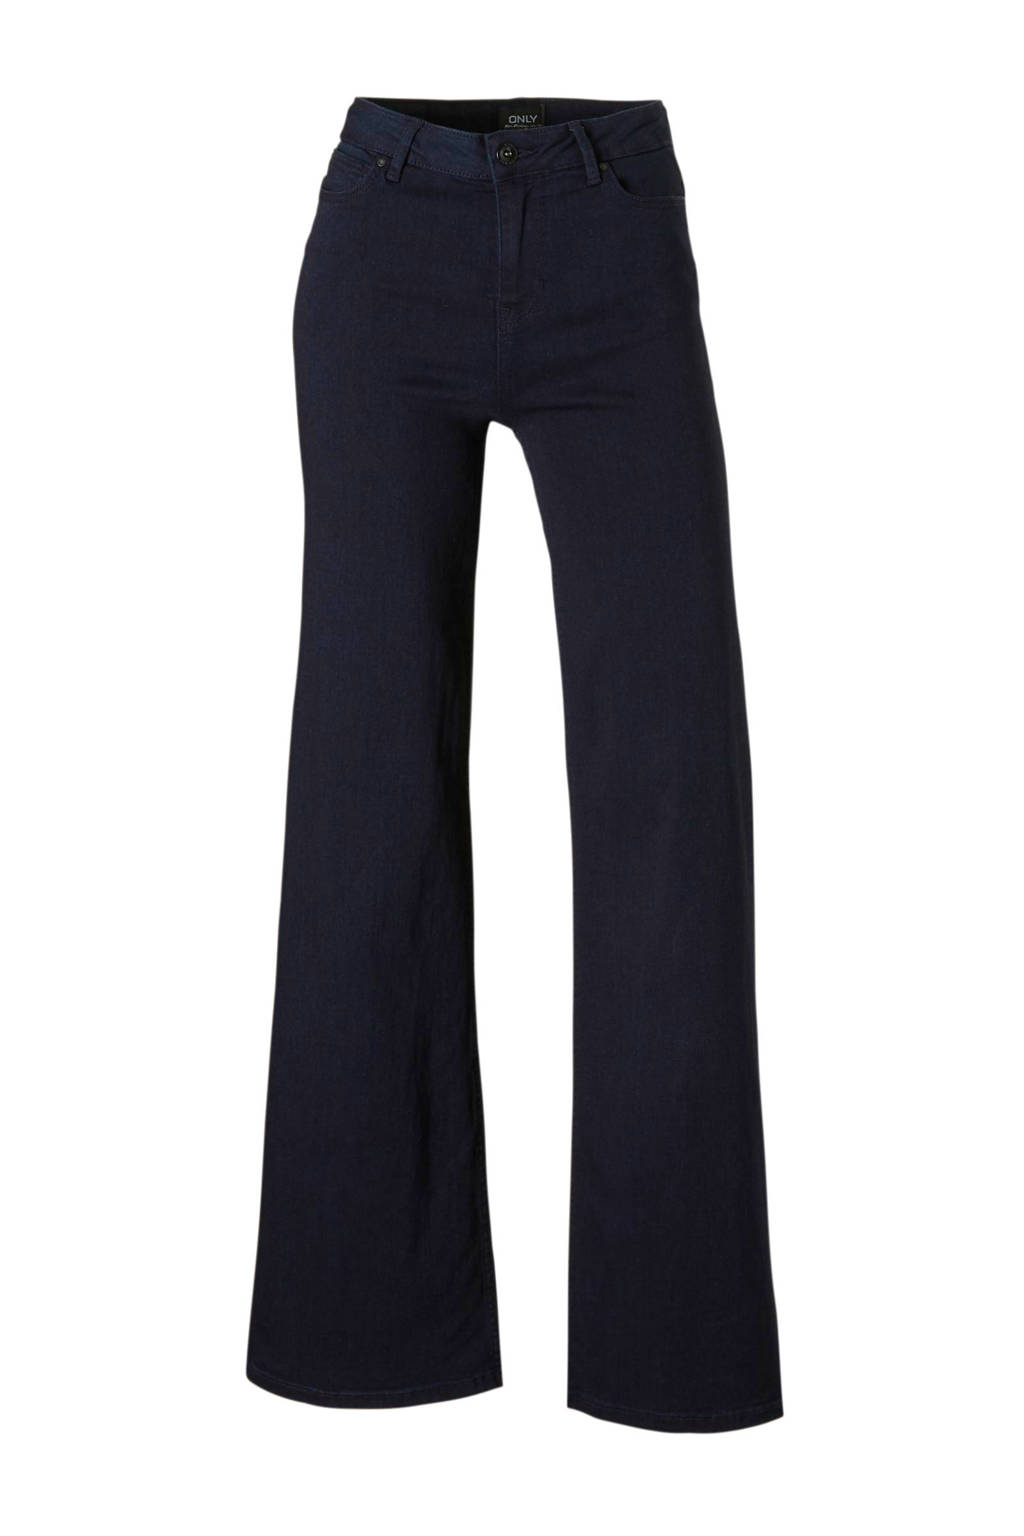 ONLY wide leg jeans, Donkerblauw